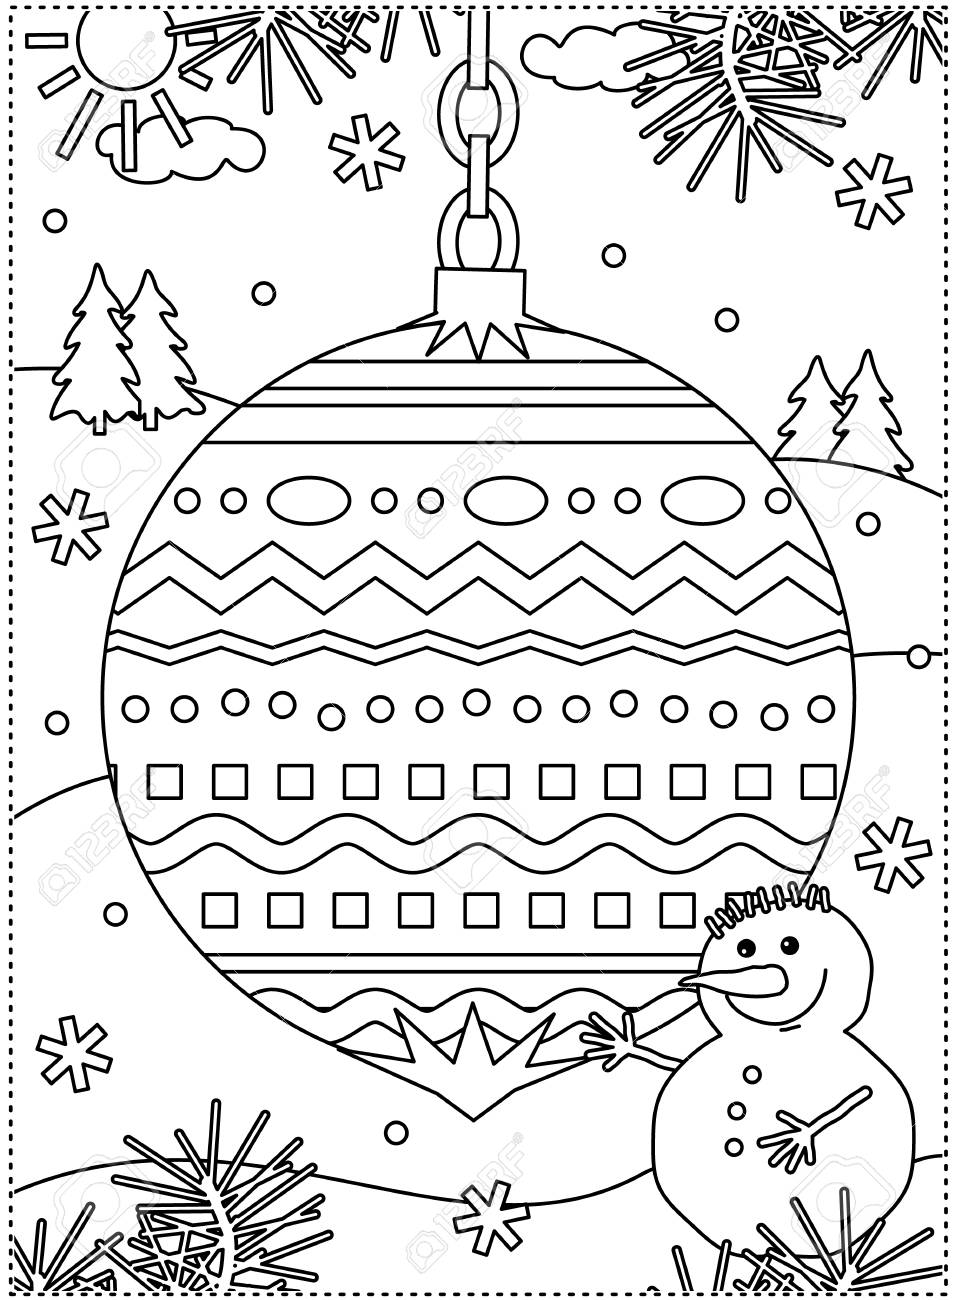 Winter Holidays Coloring Page For Kids And Grown-ups With Decorated ...